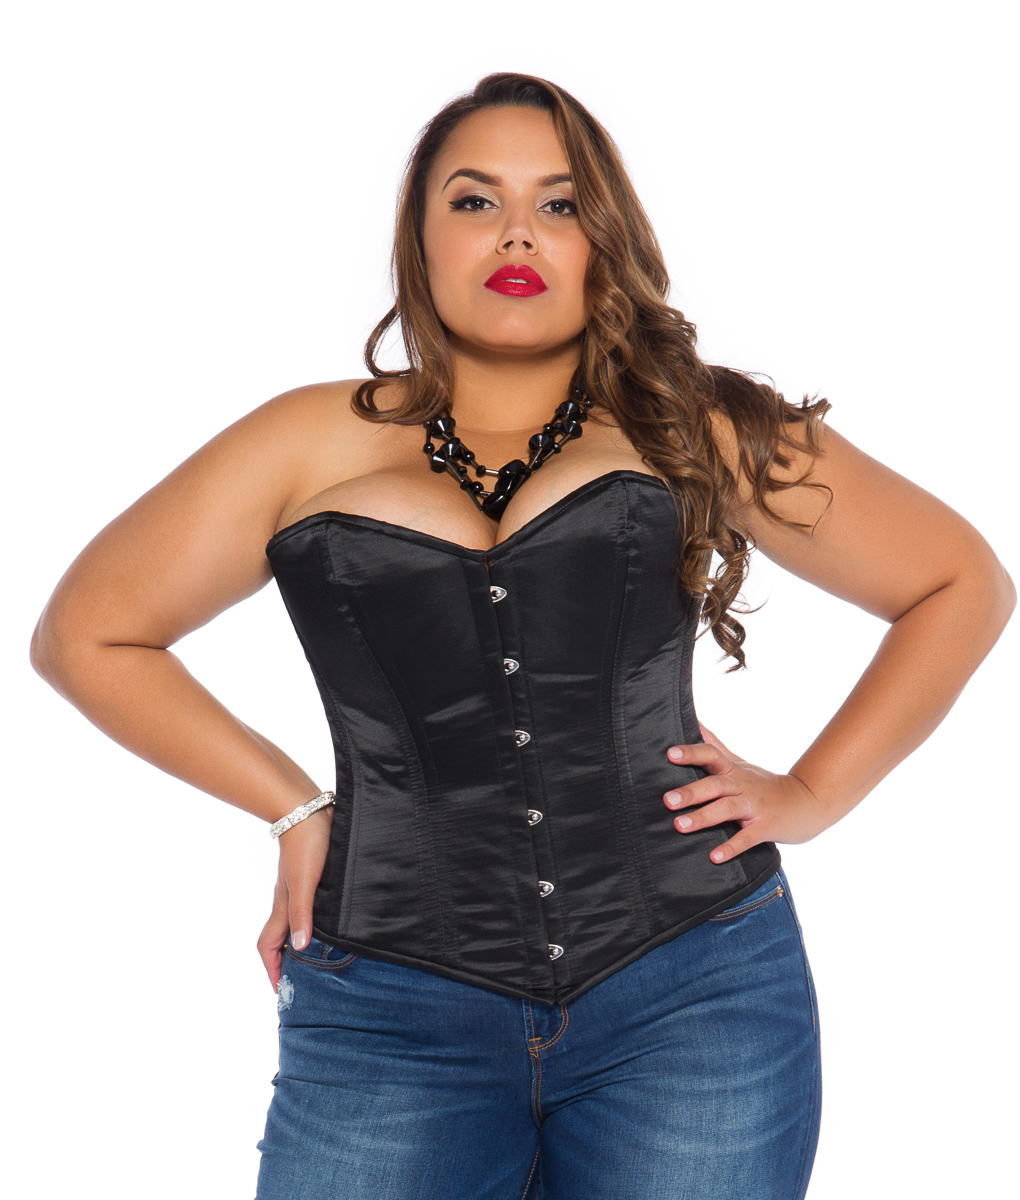 bb0e8eebf1 Jenna Black Satin Plus Size Corset (Overbust) with Steel Bones